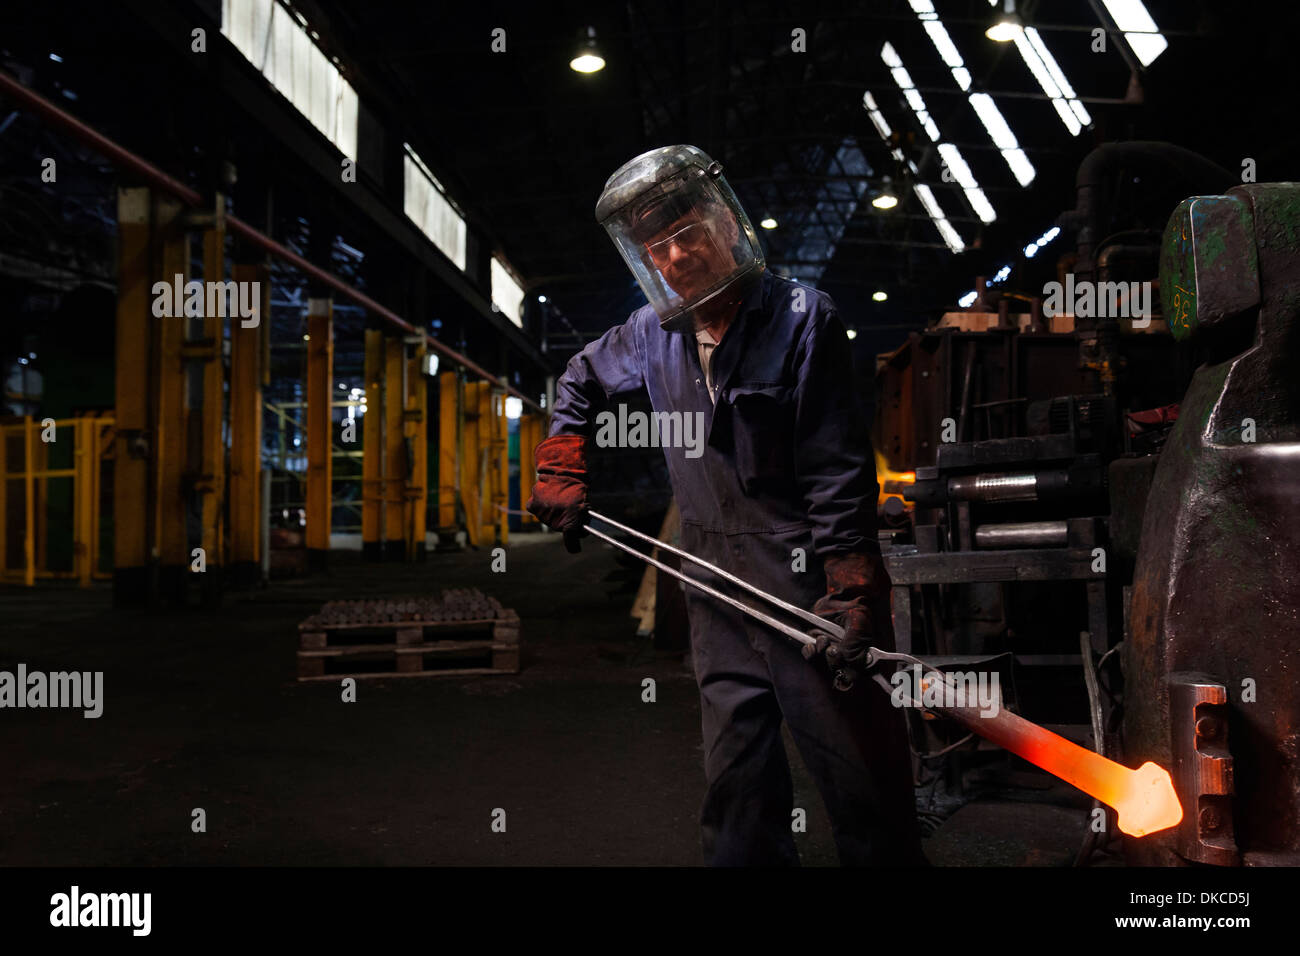 Forge worker with an upset forging of railway part - Stock Image